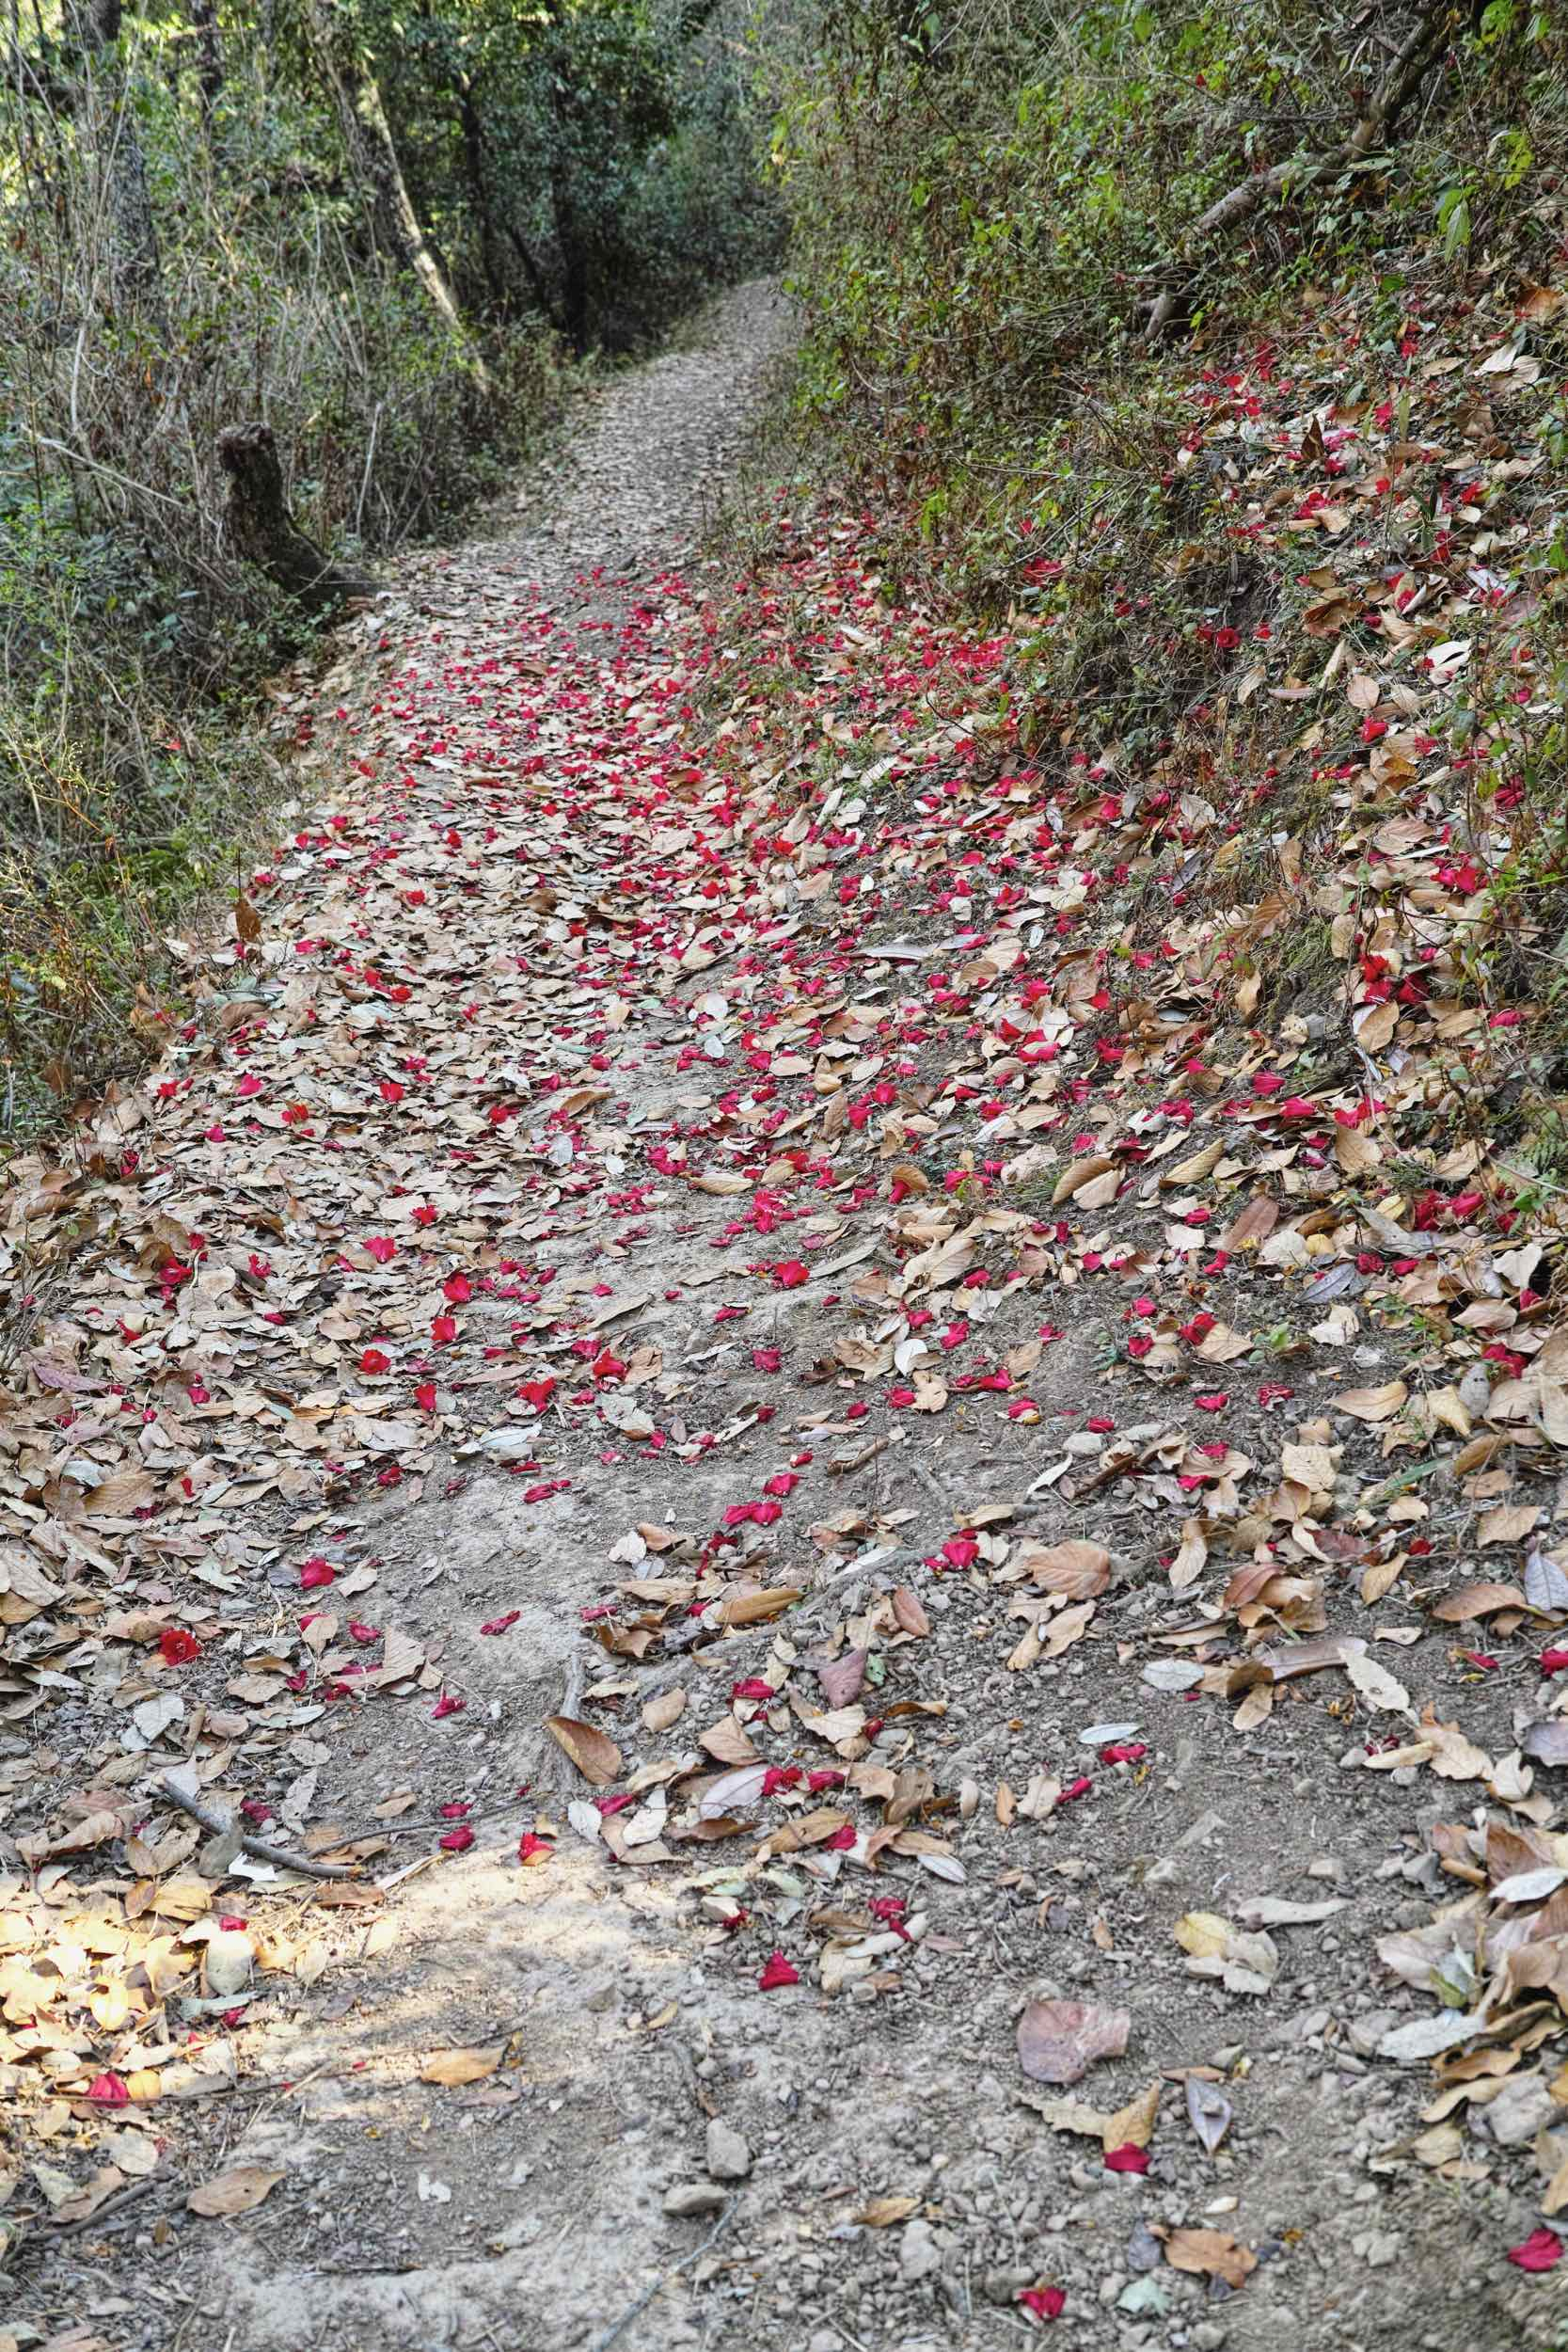 Buransh flowers fall in a red carpet along the trail